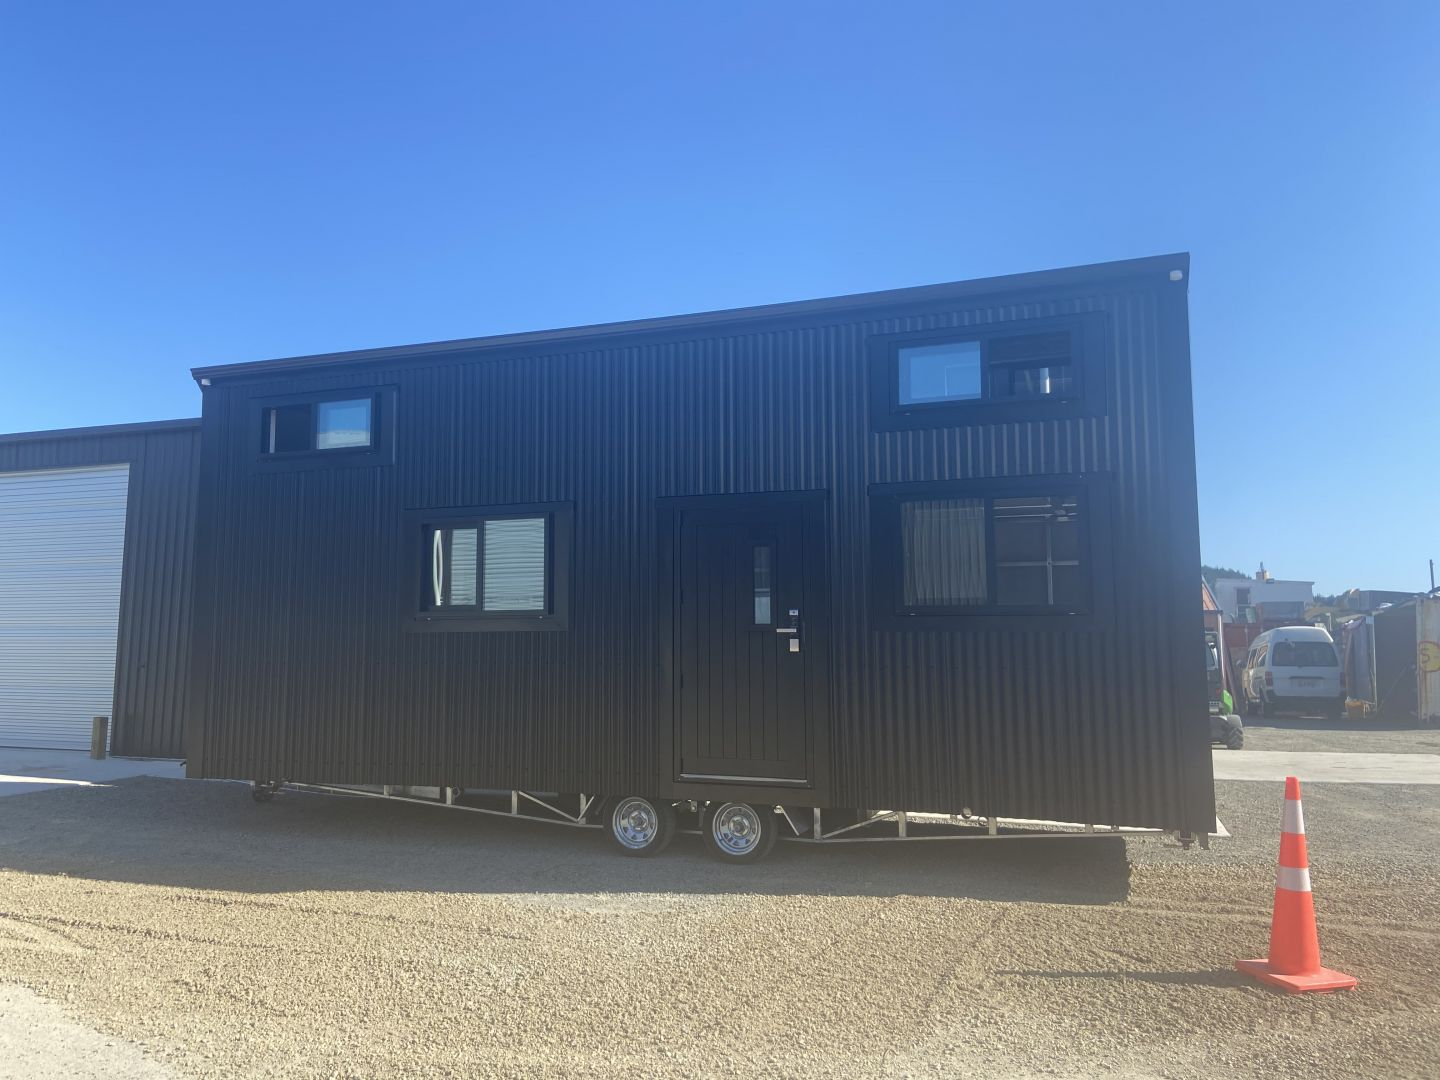 Tiny Homes & Cabins from 4.2 metres up to 9 metres photo 16